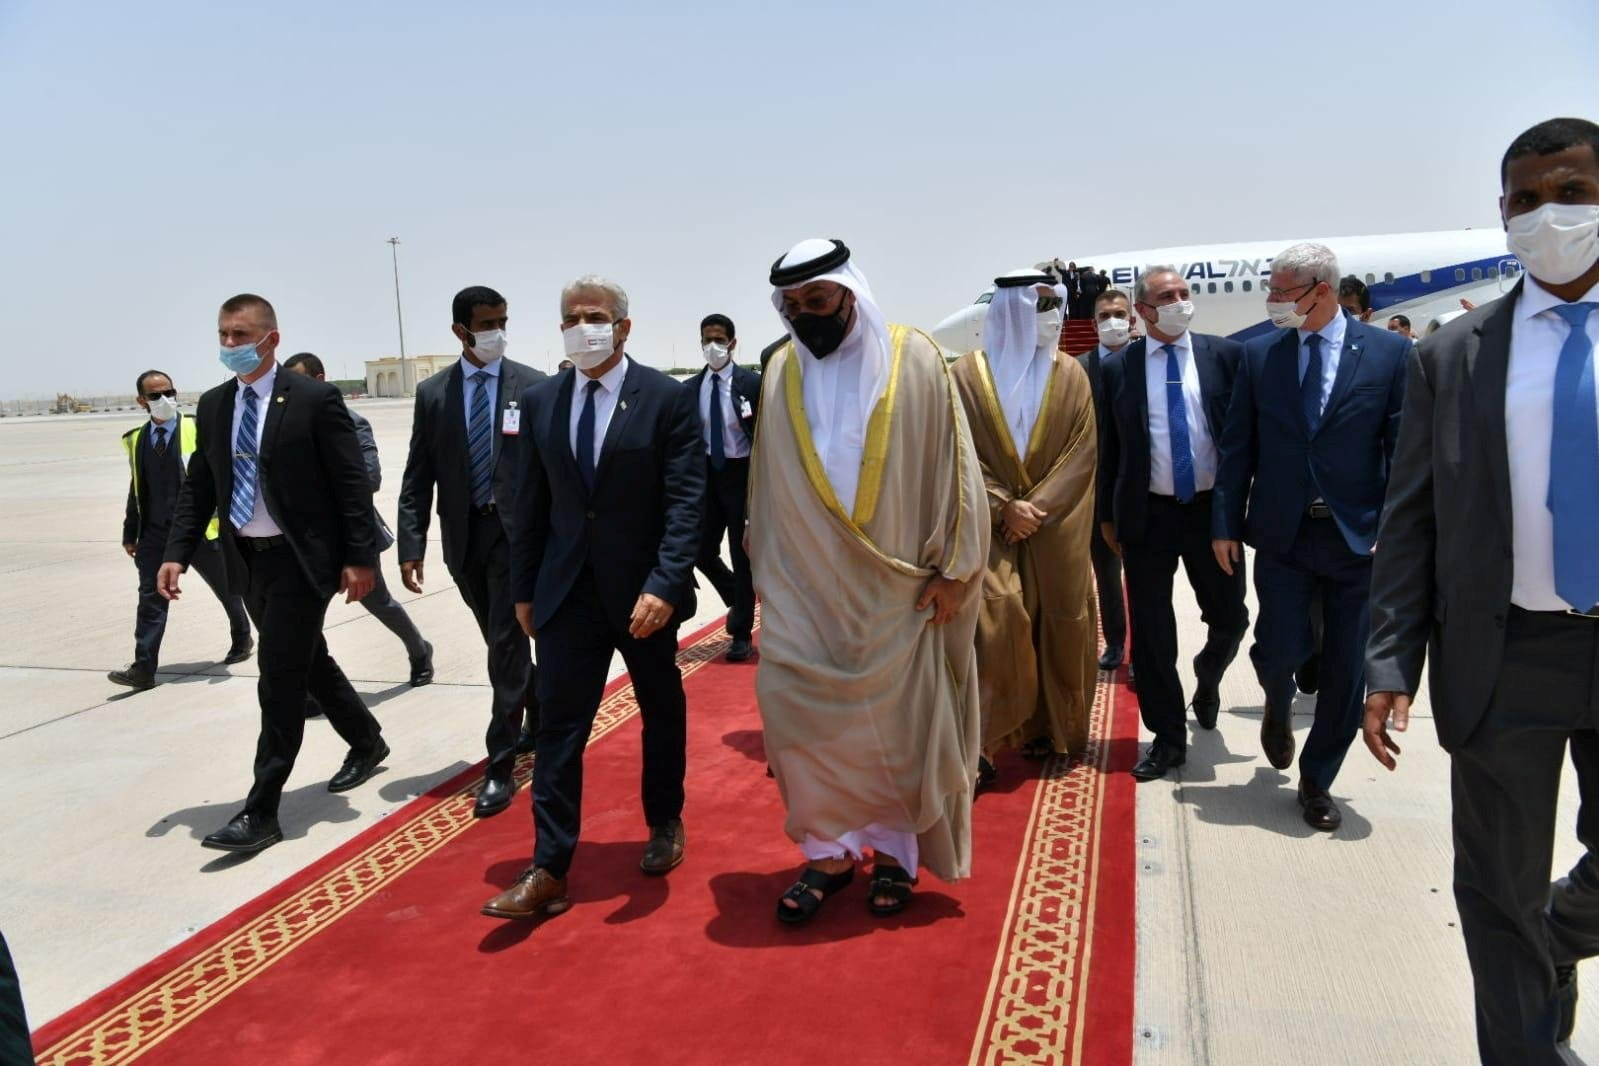 United Arab Emirates Minister of State Ahmed Ali Al Sayegh (R) welcomes Israeli Foreign Minister Yair Lapid (L) at Abu Dhabi Airport, UAE, June 27, 2021. (Shlomi Amsalem/Government Press Office (GPO) via Reuters)